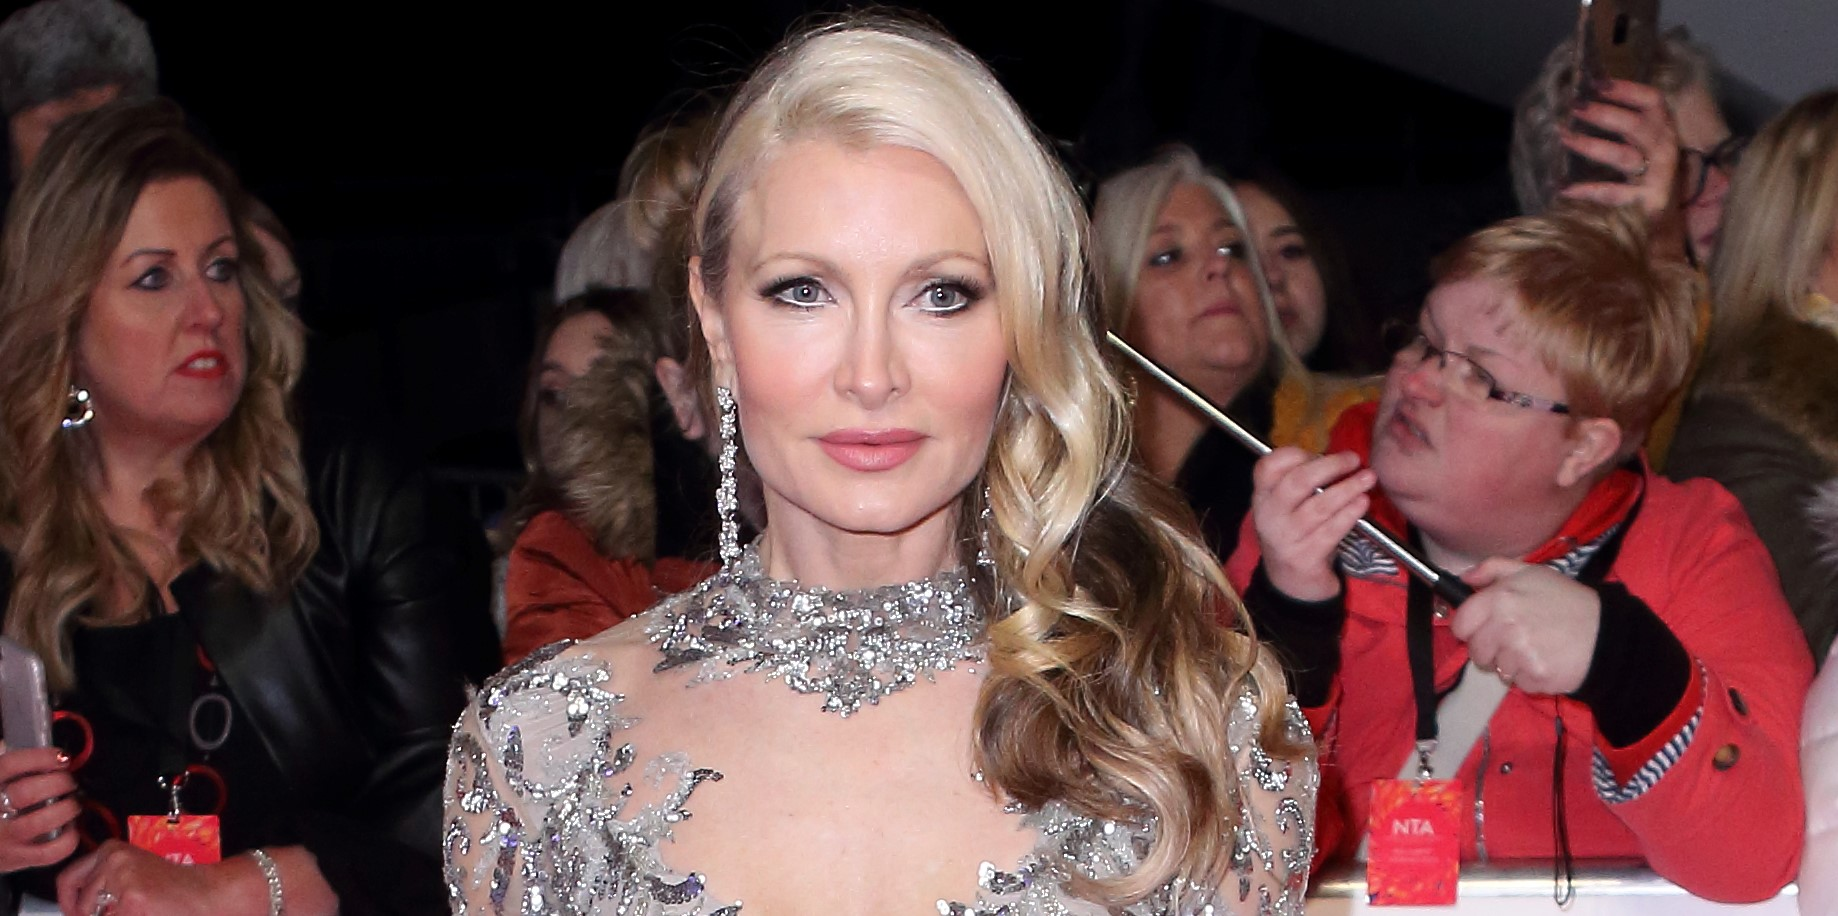 Caprice Bourret breaks silence on 'hard few months' as she quits Dancing On Ice